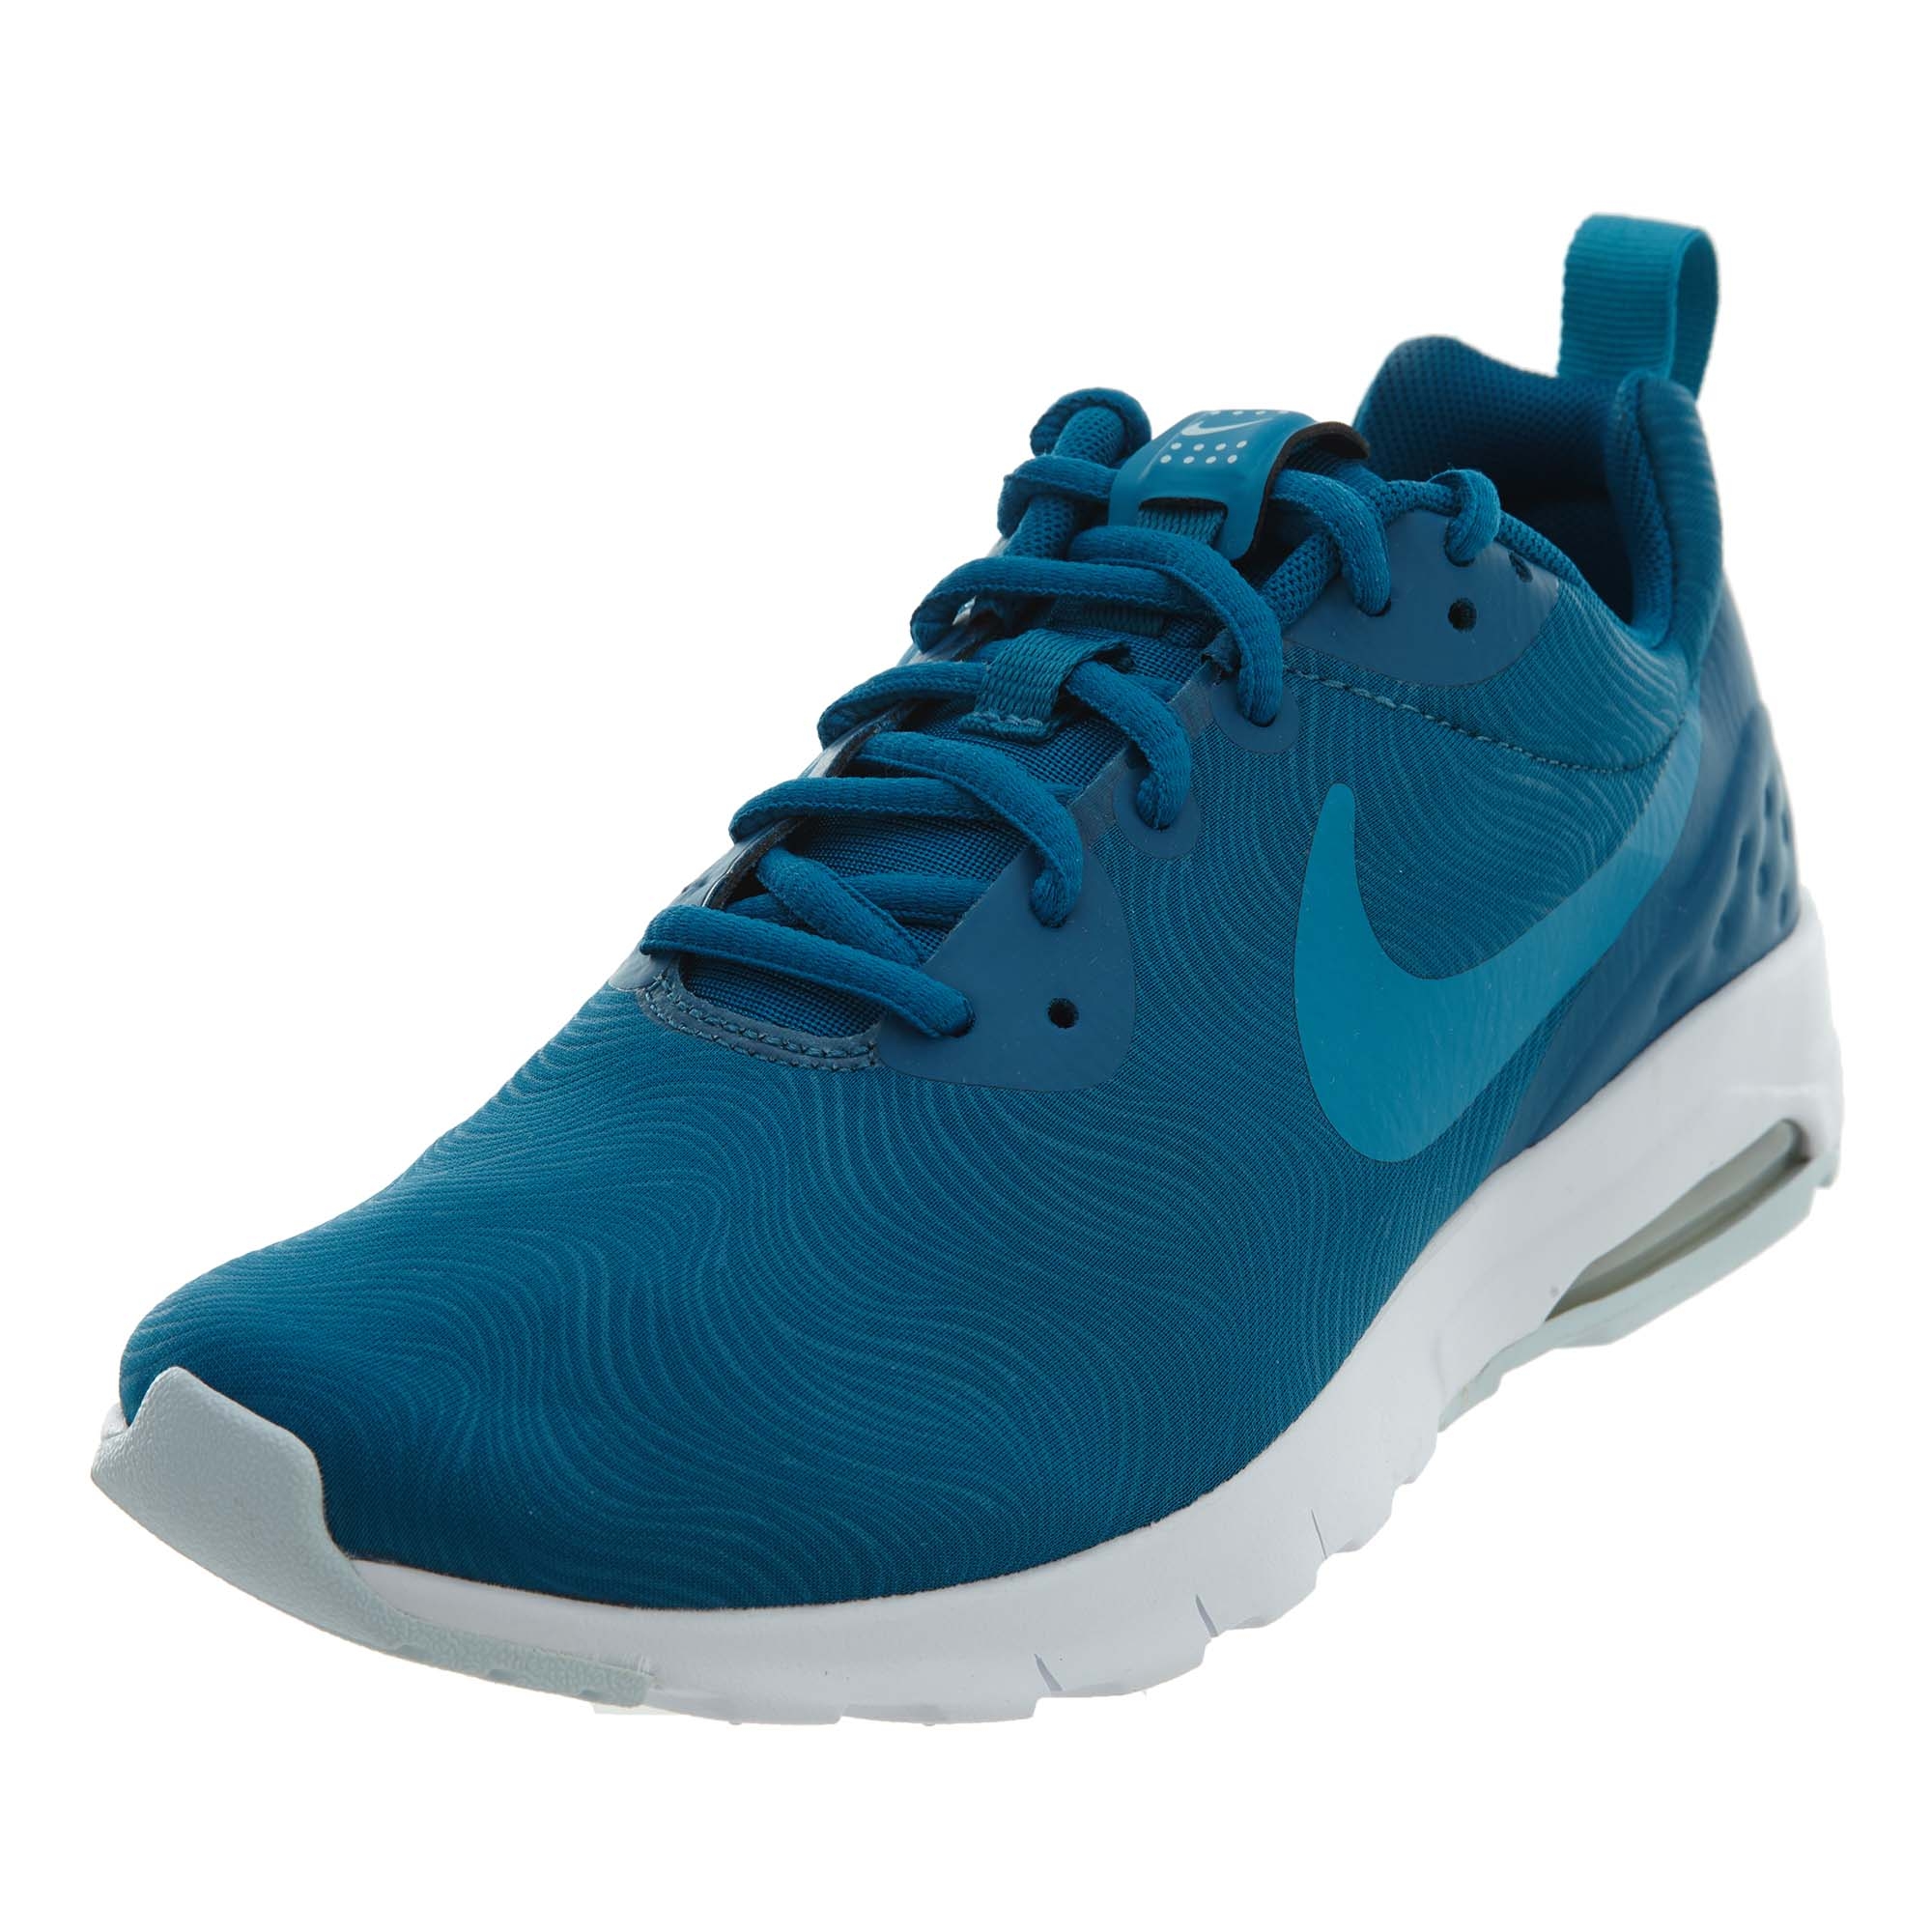 931835cde96e Details about Nike Womens Air Max Motion Low Sneakers 844895-303